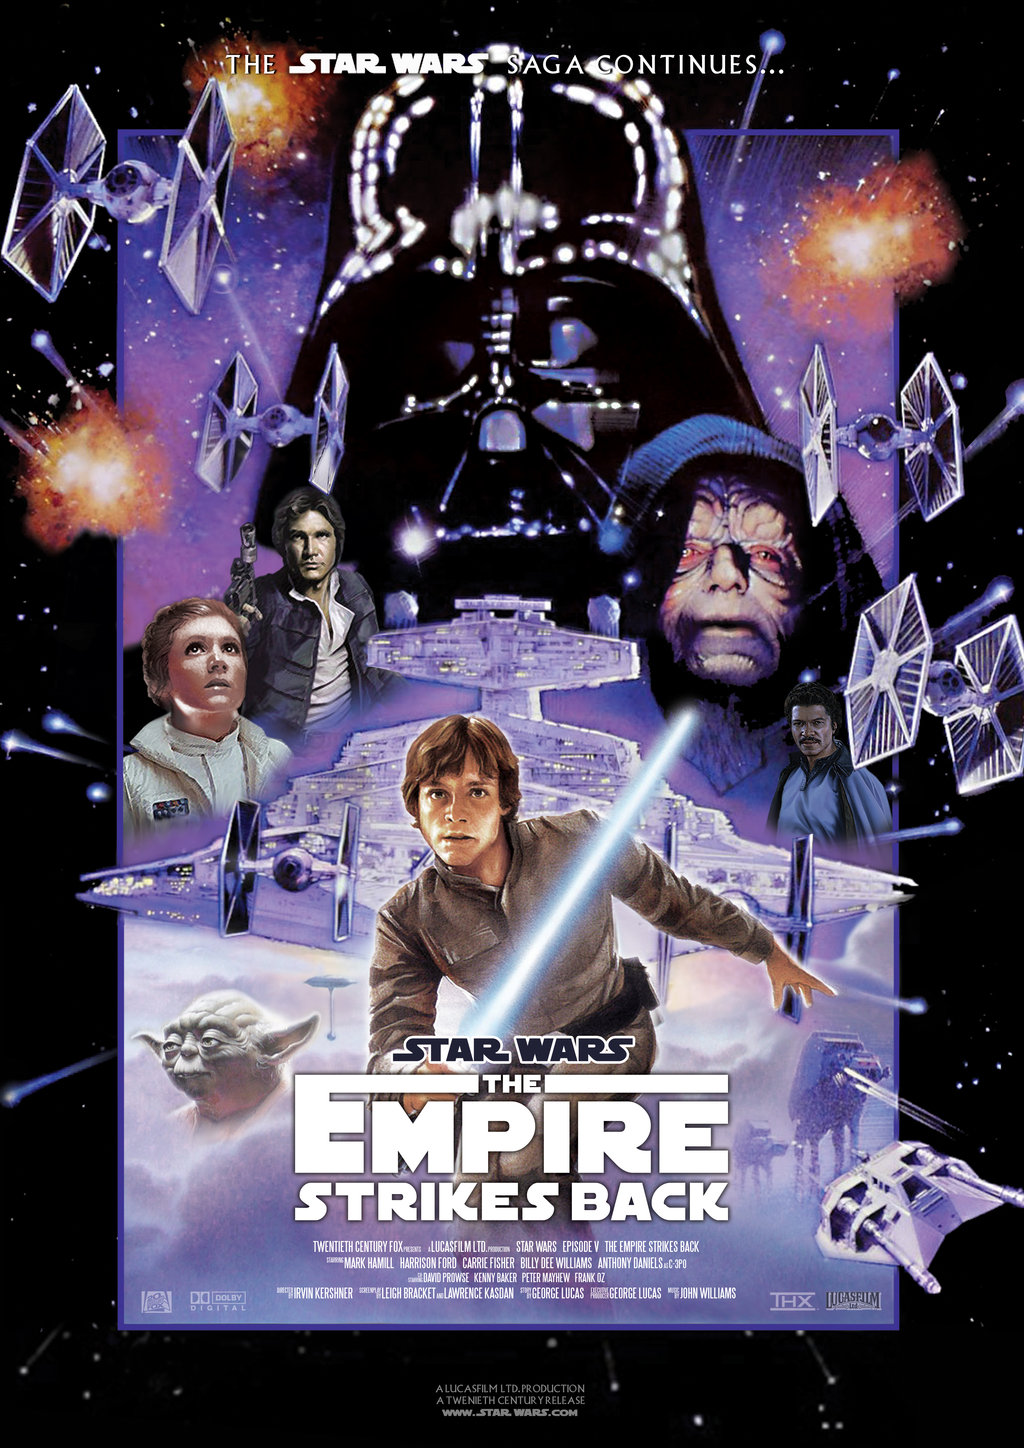 image - star-wars-empire-strikes-back-poster | moviepedia